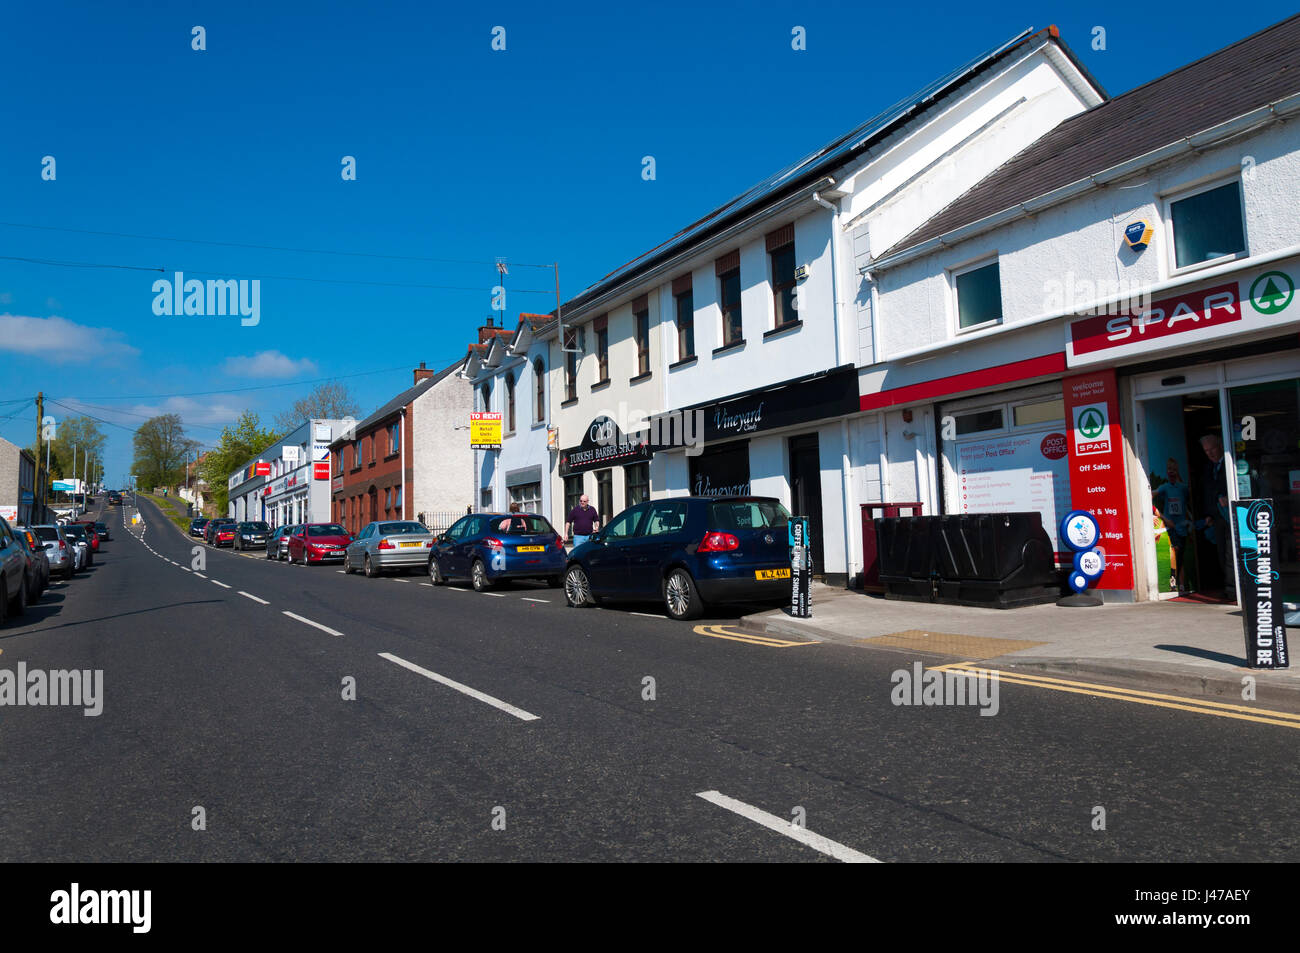 Main Street. The Claudy bombing occurred on 31 July 1972, when three car bombs exploded mid-morning on the Main - Stock Image